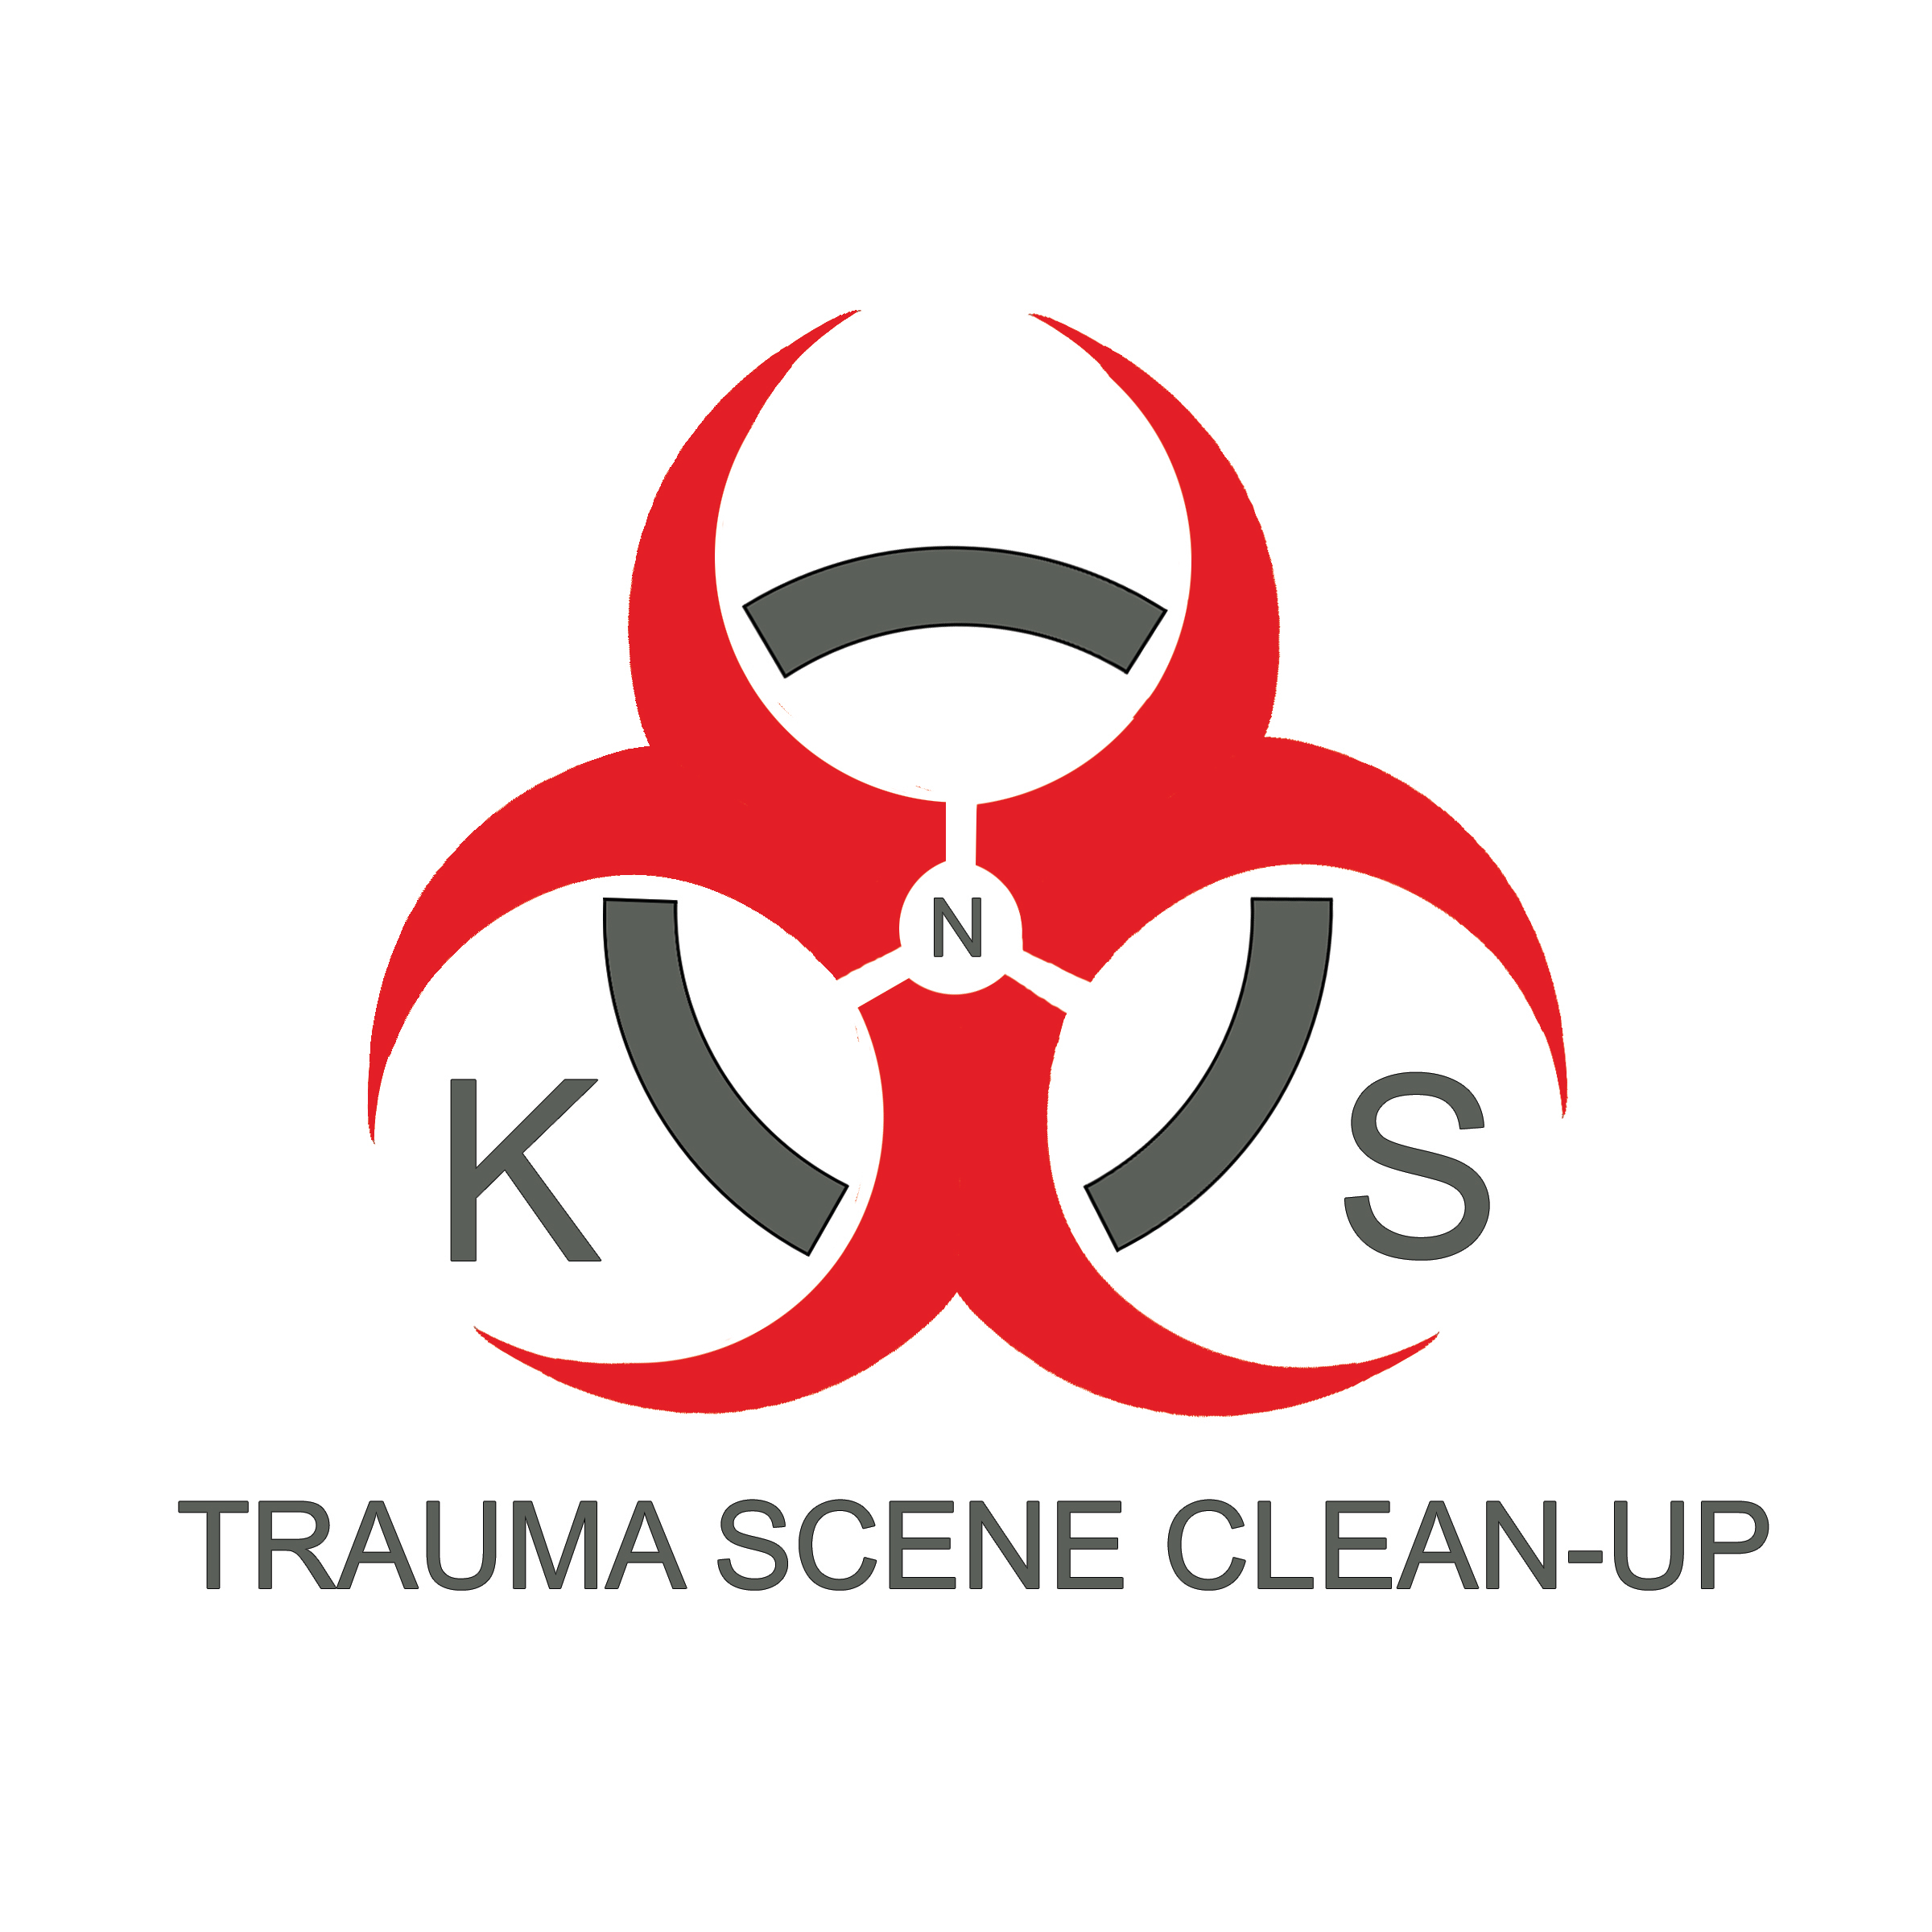 K-N-S Trauma Scene Clean Up